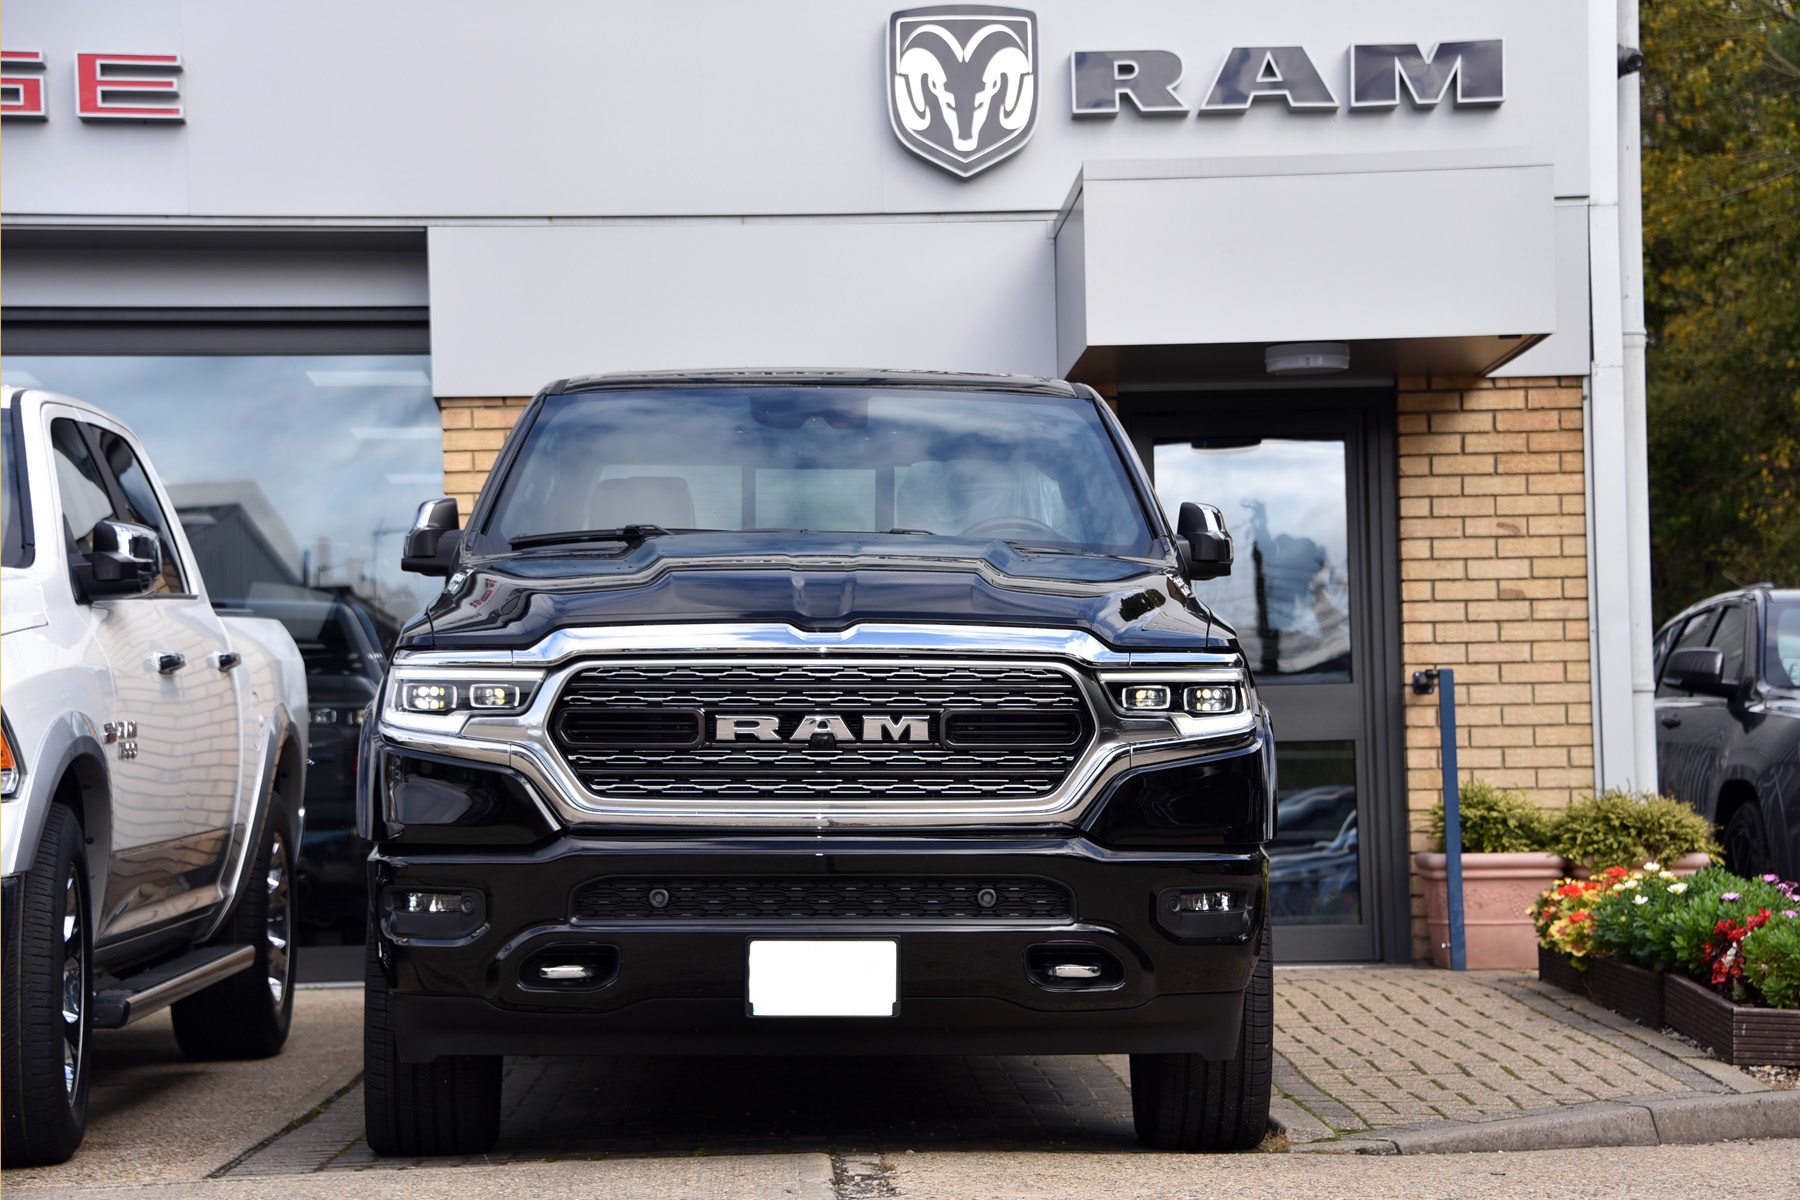 New Dodge Ram Limited Crew Cab Pickup for sale in the UK. All models available. Official Dealers for Dodge and Ram